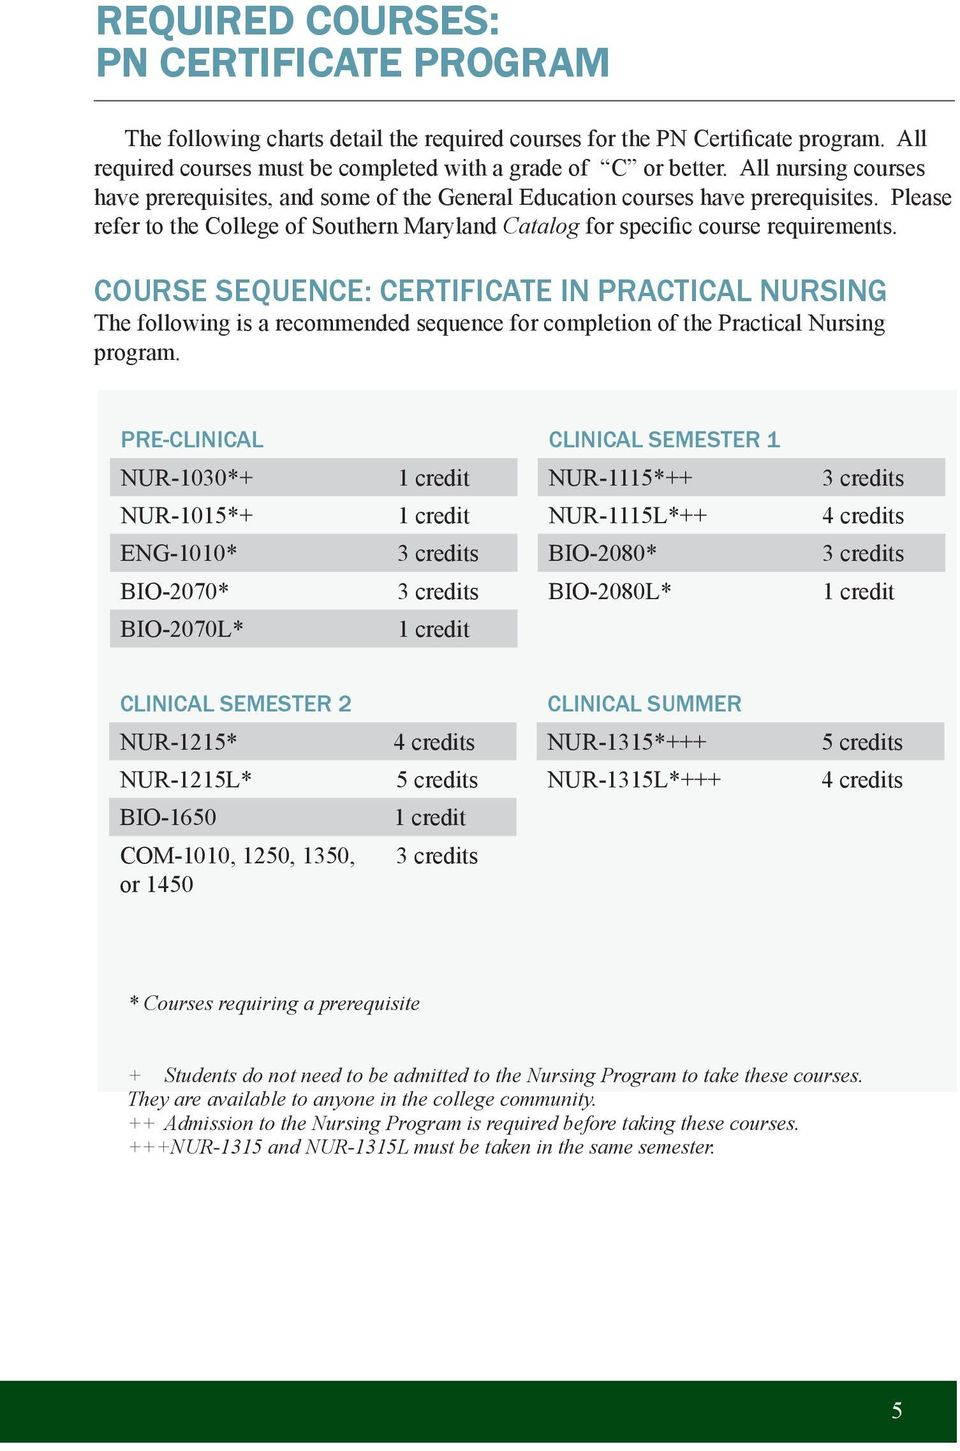 COURSE SEQUENCE: CERTIFICATE IN PRACTICAL NURSING The following is a recommended sequence for completion of the Practical Nursing program.